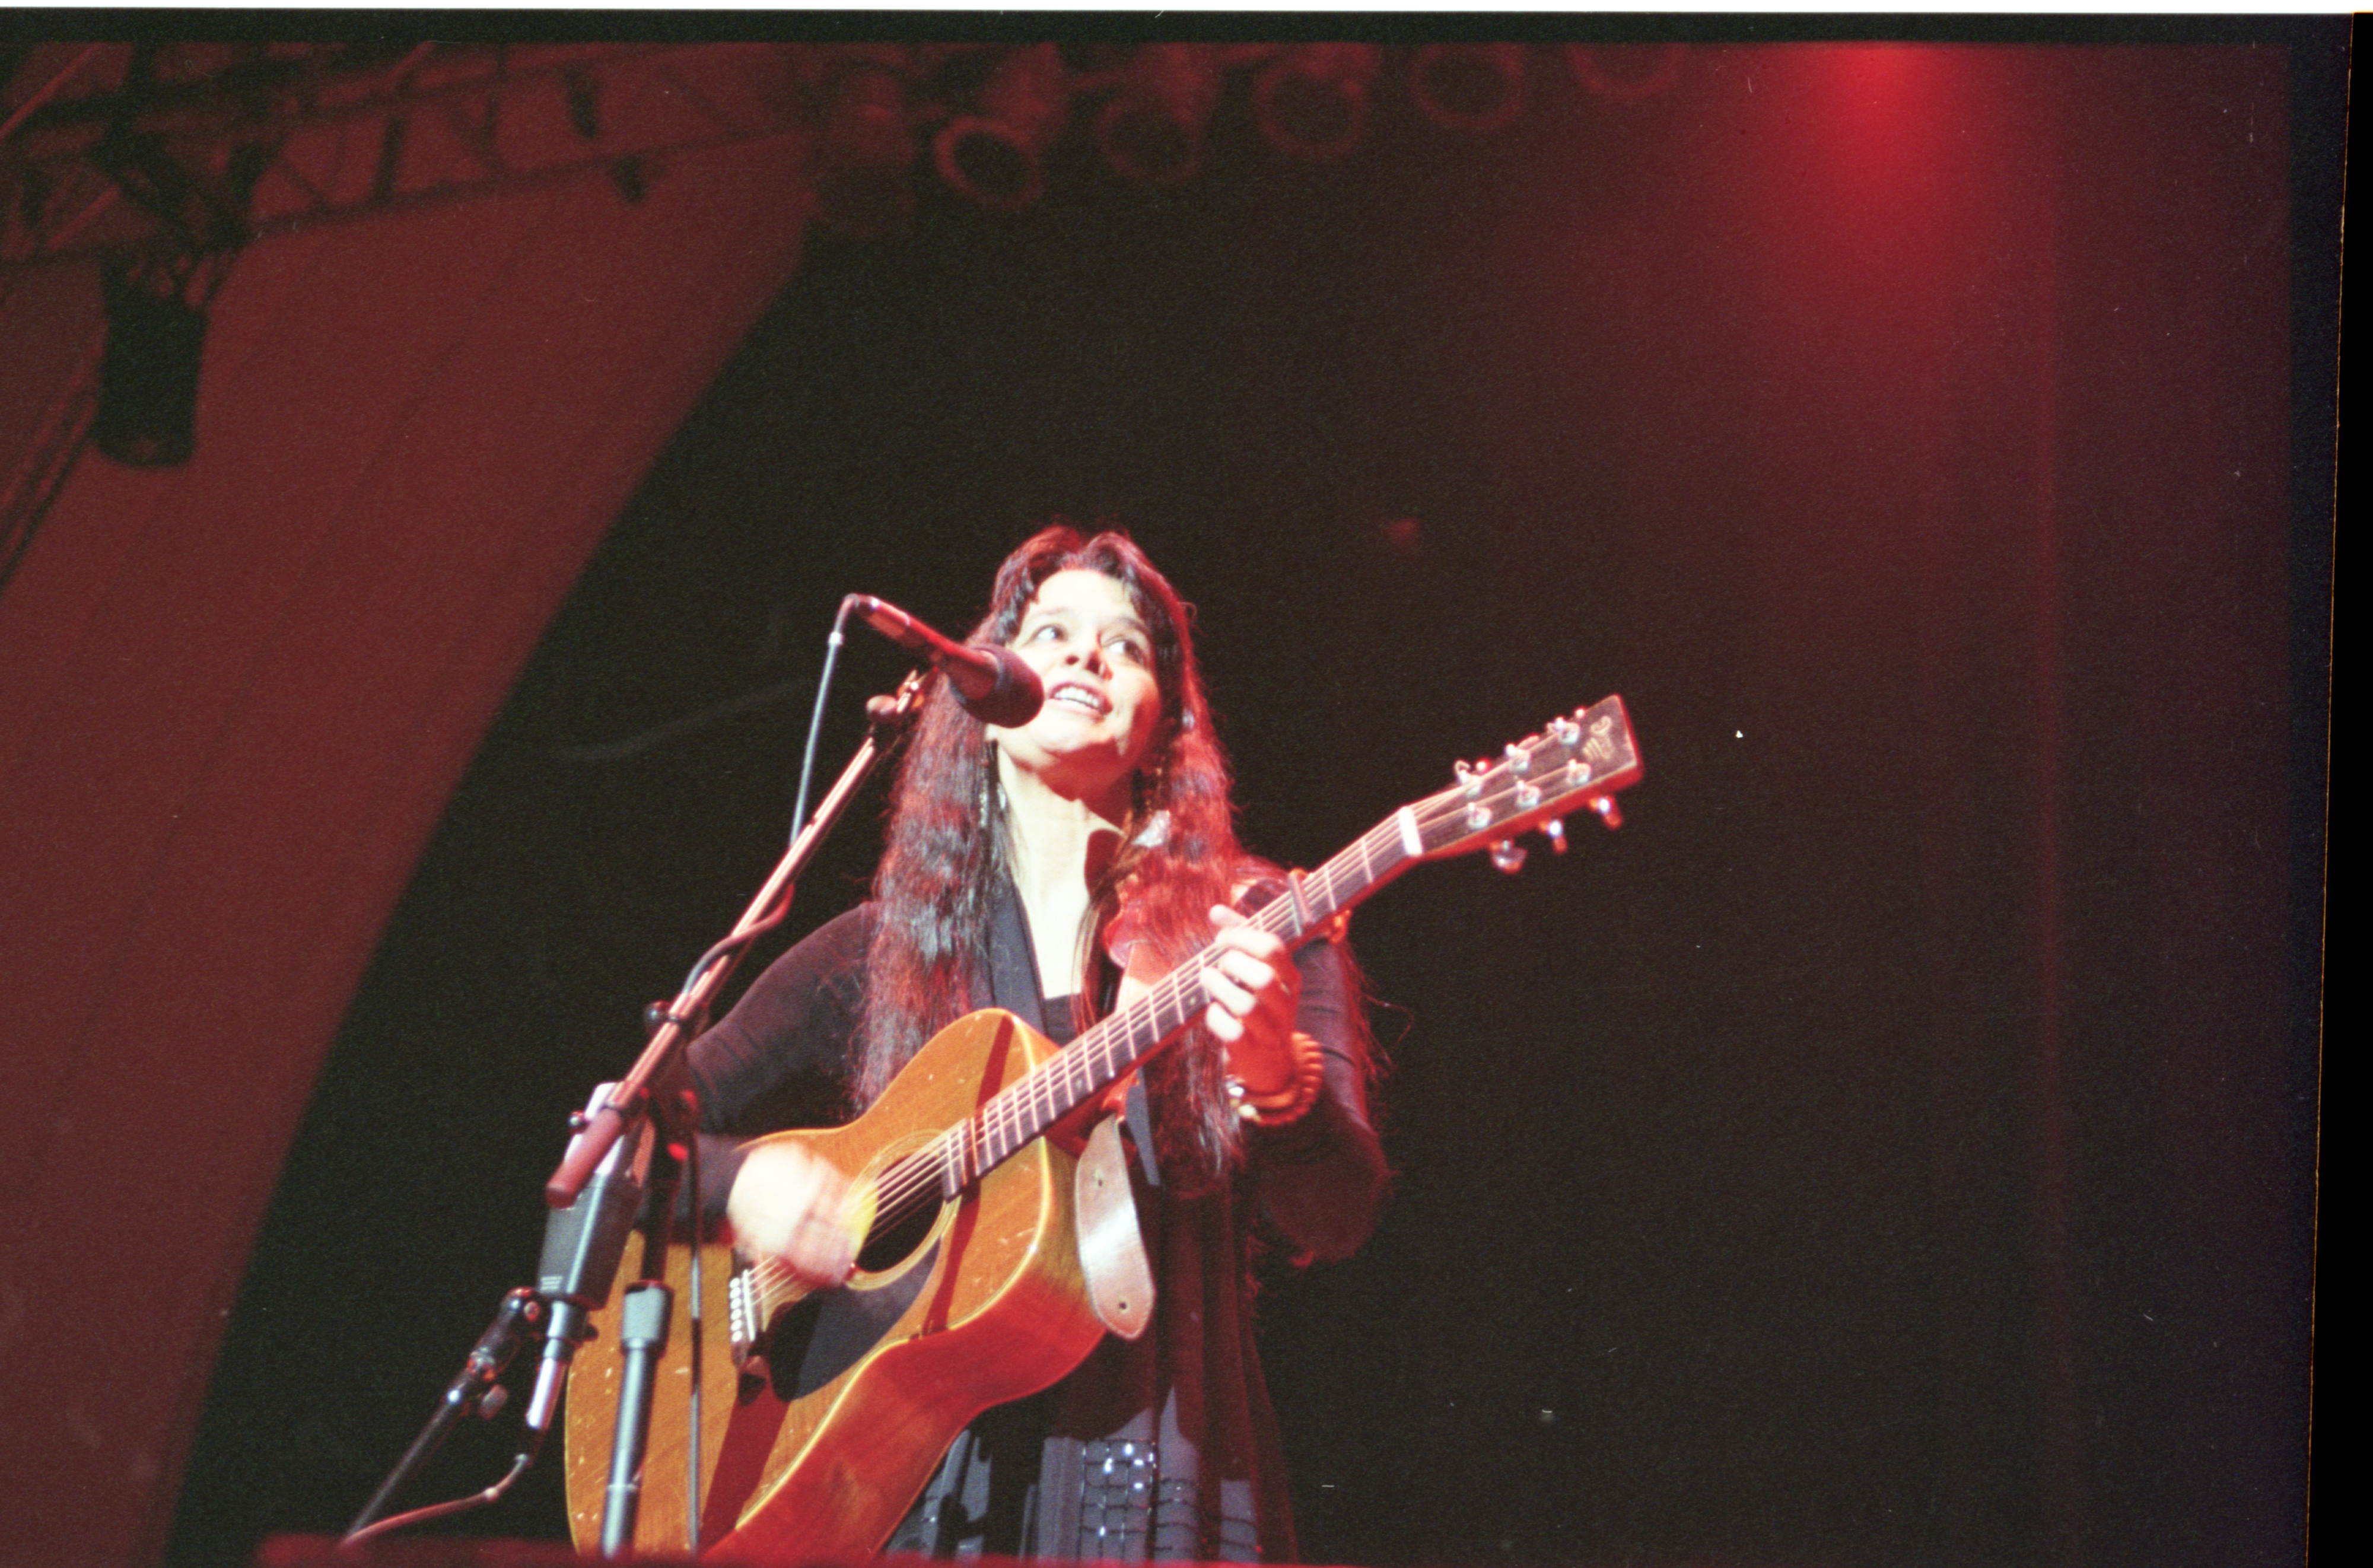 Anne Hills Performs At The Ann Arbor Folk Festival, January 2000 image